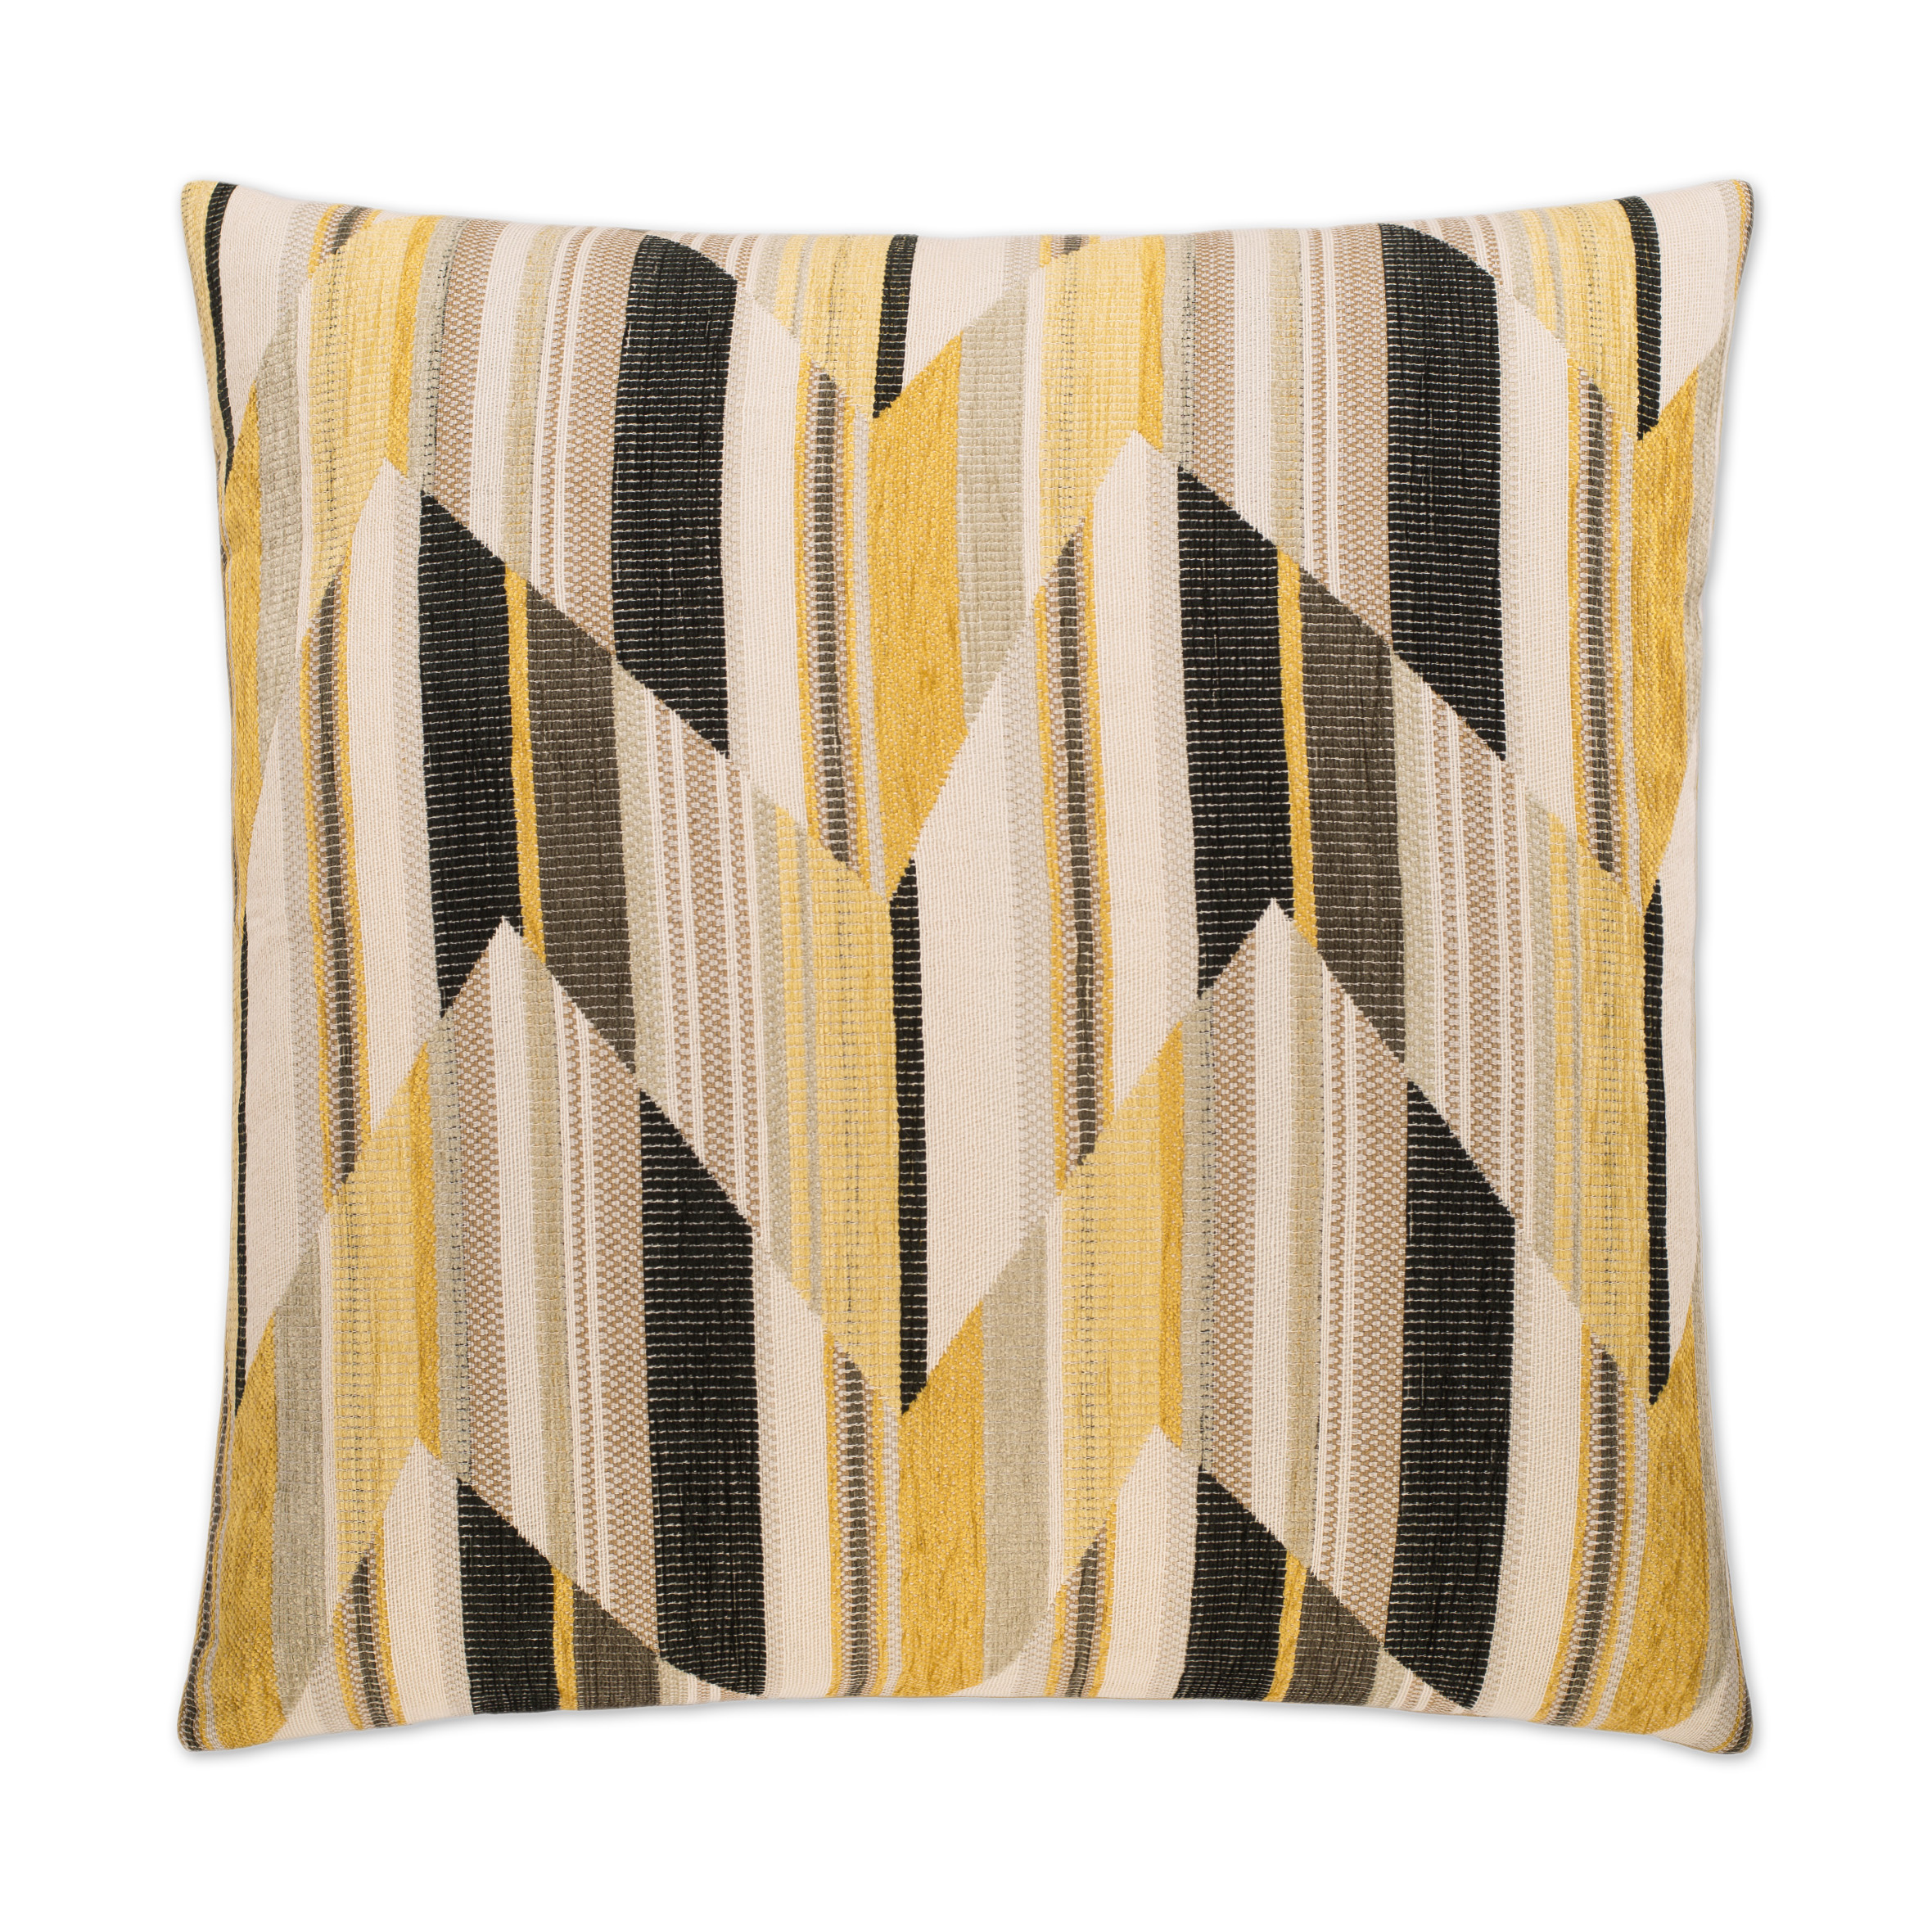 Canaan Company Boomerang Yellow Accent Pillow 2343-Y by Canaan